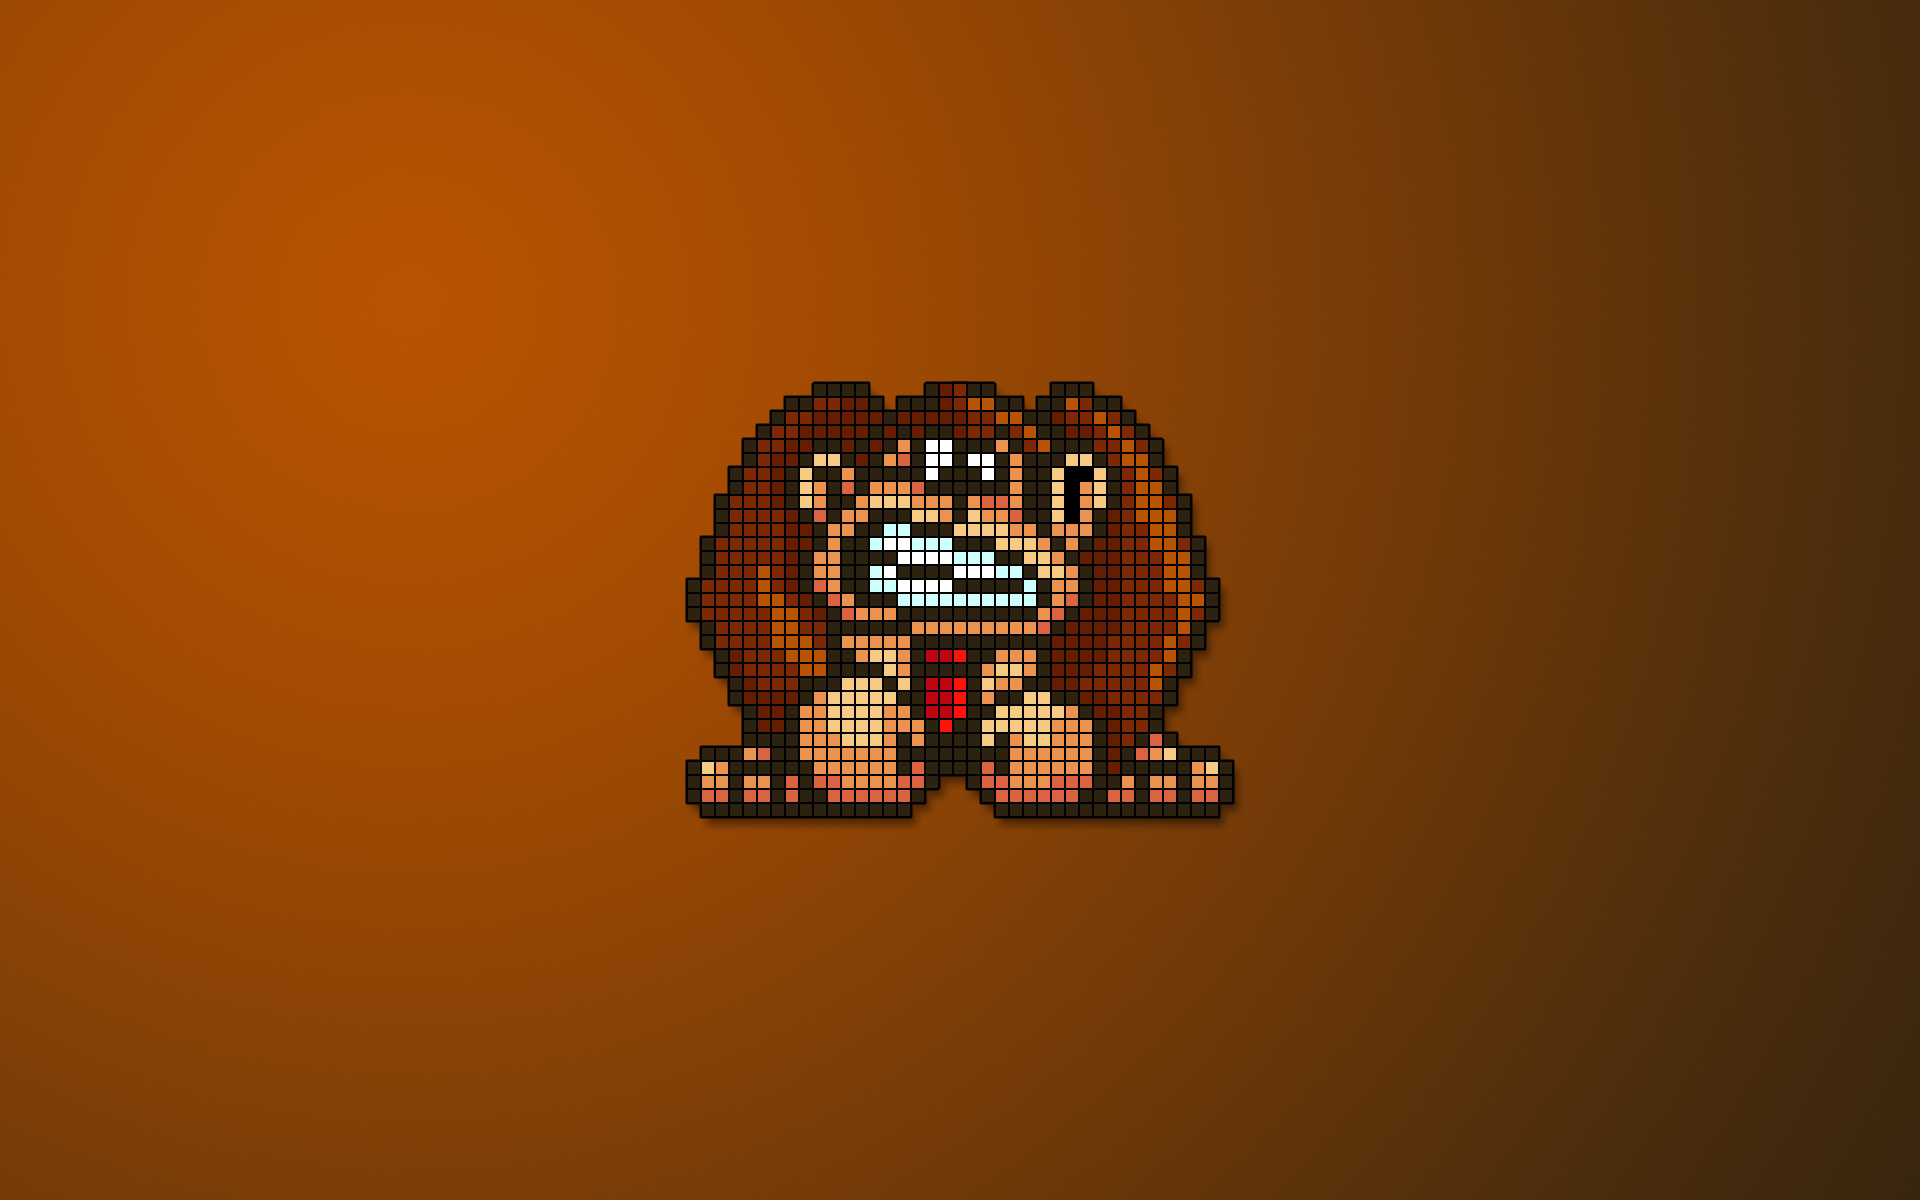 Mario Bros Iphone Wallpaper Donkey Kong Full Hd Wallpaper And Background Image